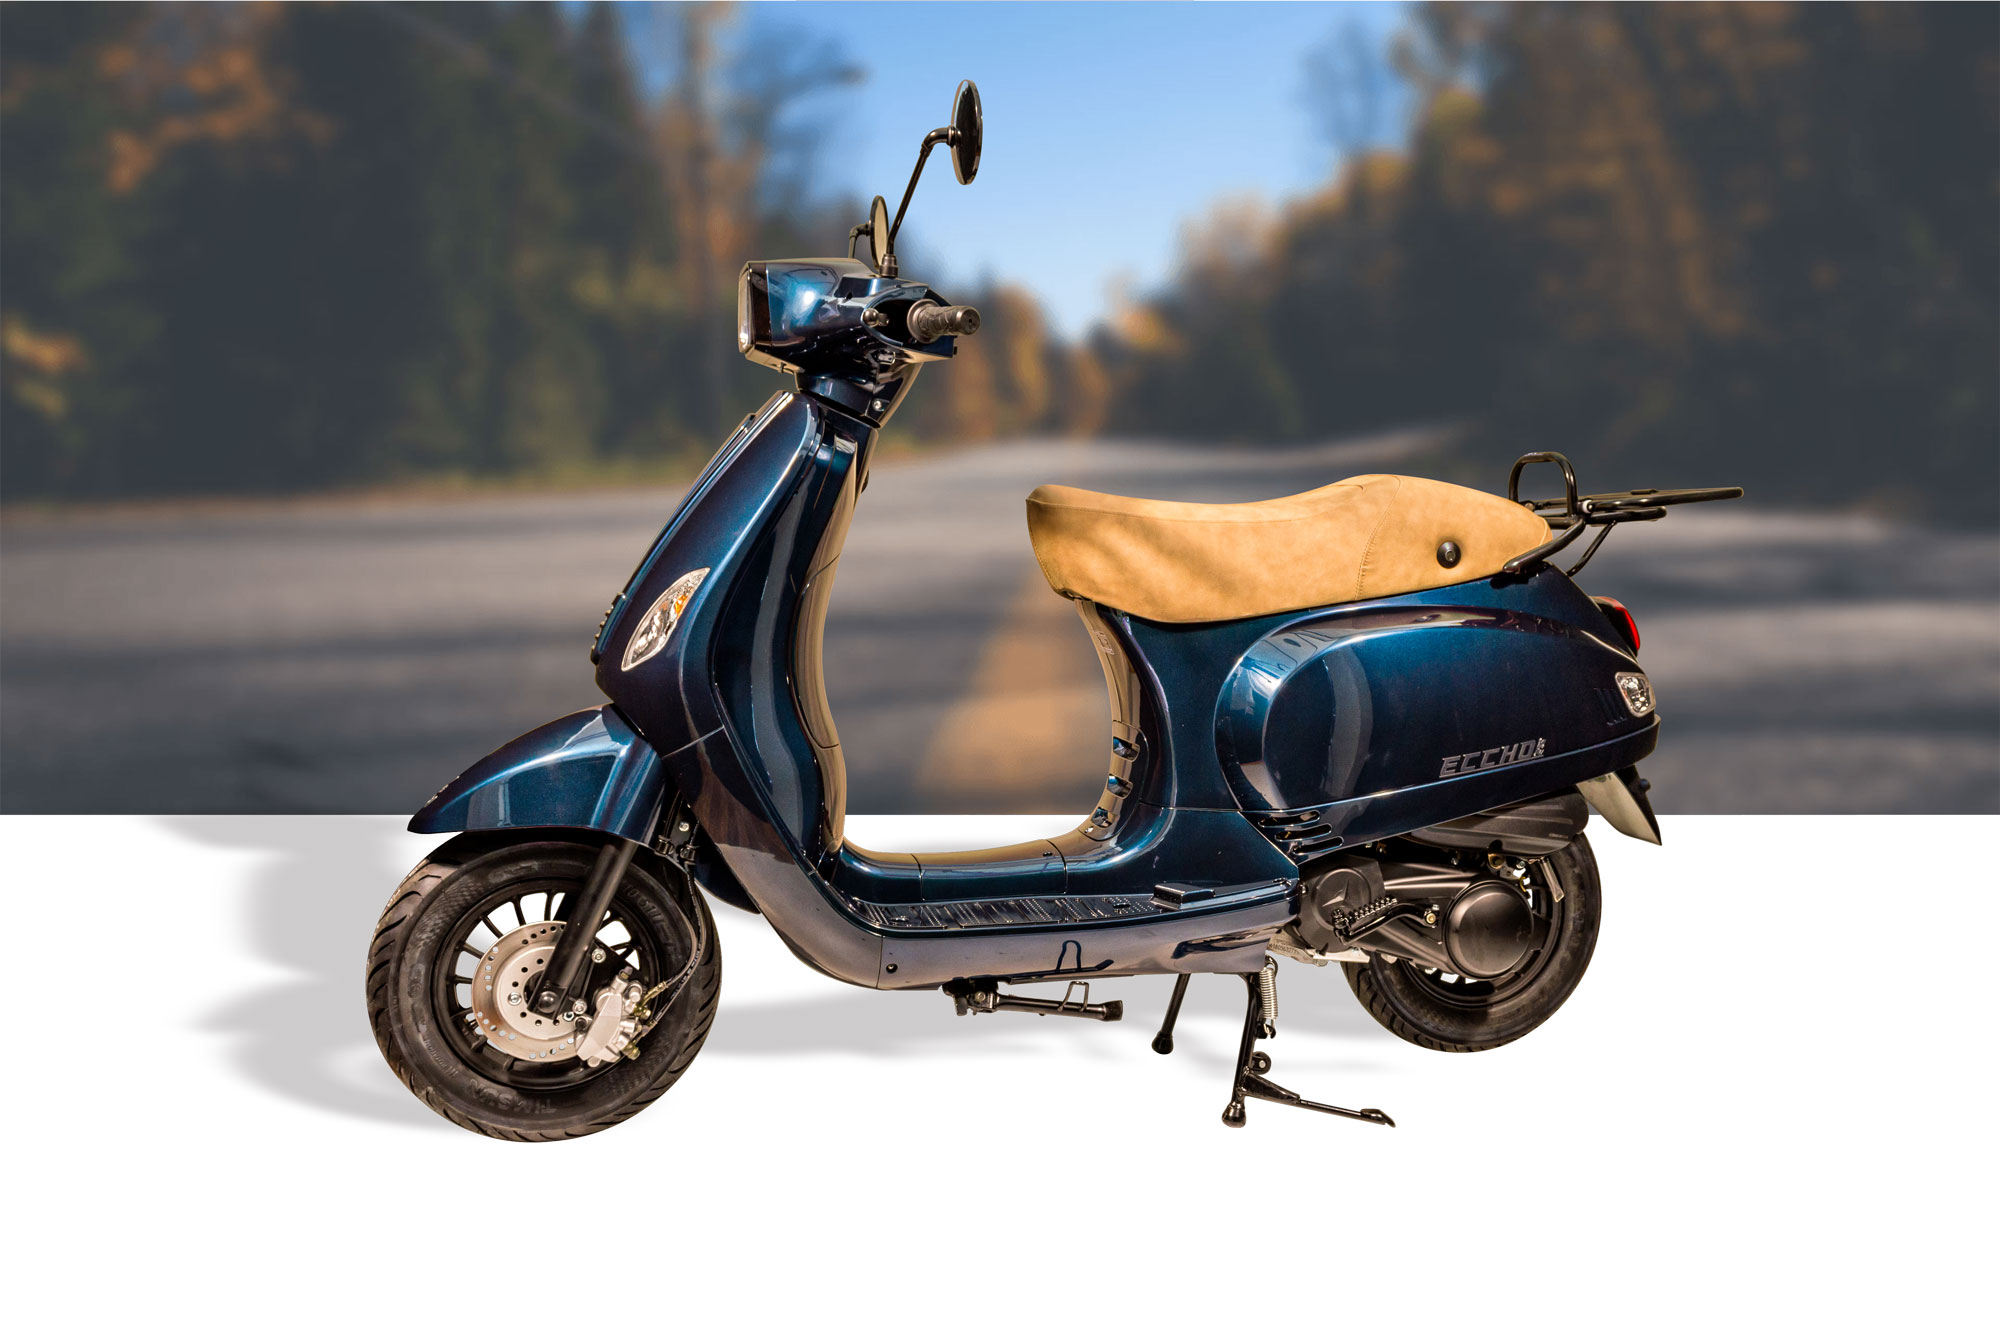 SCOOTER-125-ECCHO-VPX-SL-08